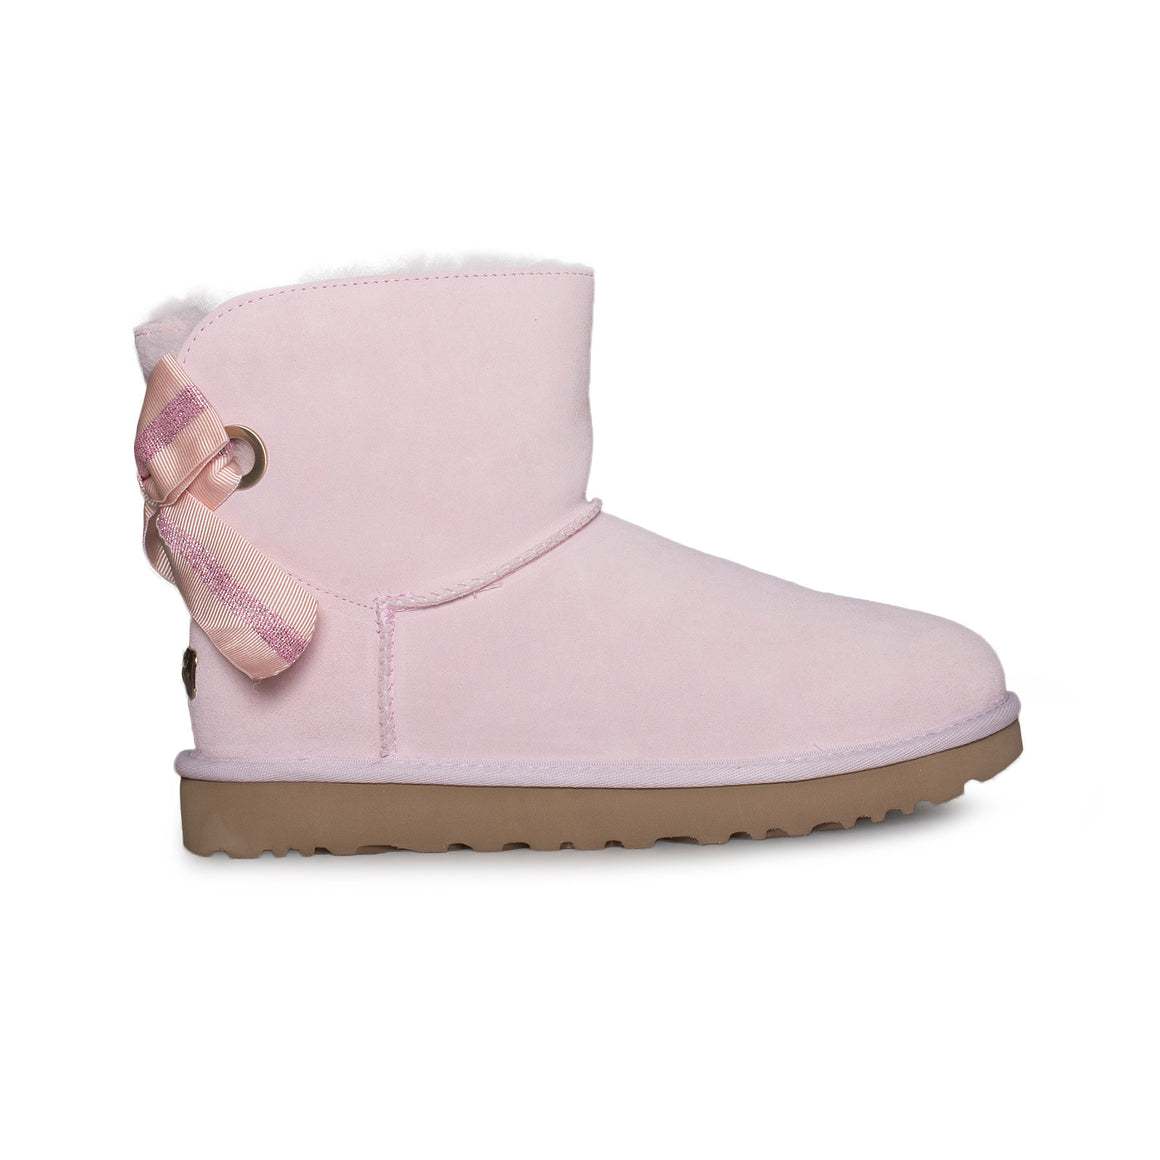 UGG Customizable Bailey Bow Mini Seashell Pink Boots - Women's